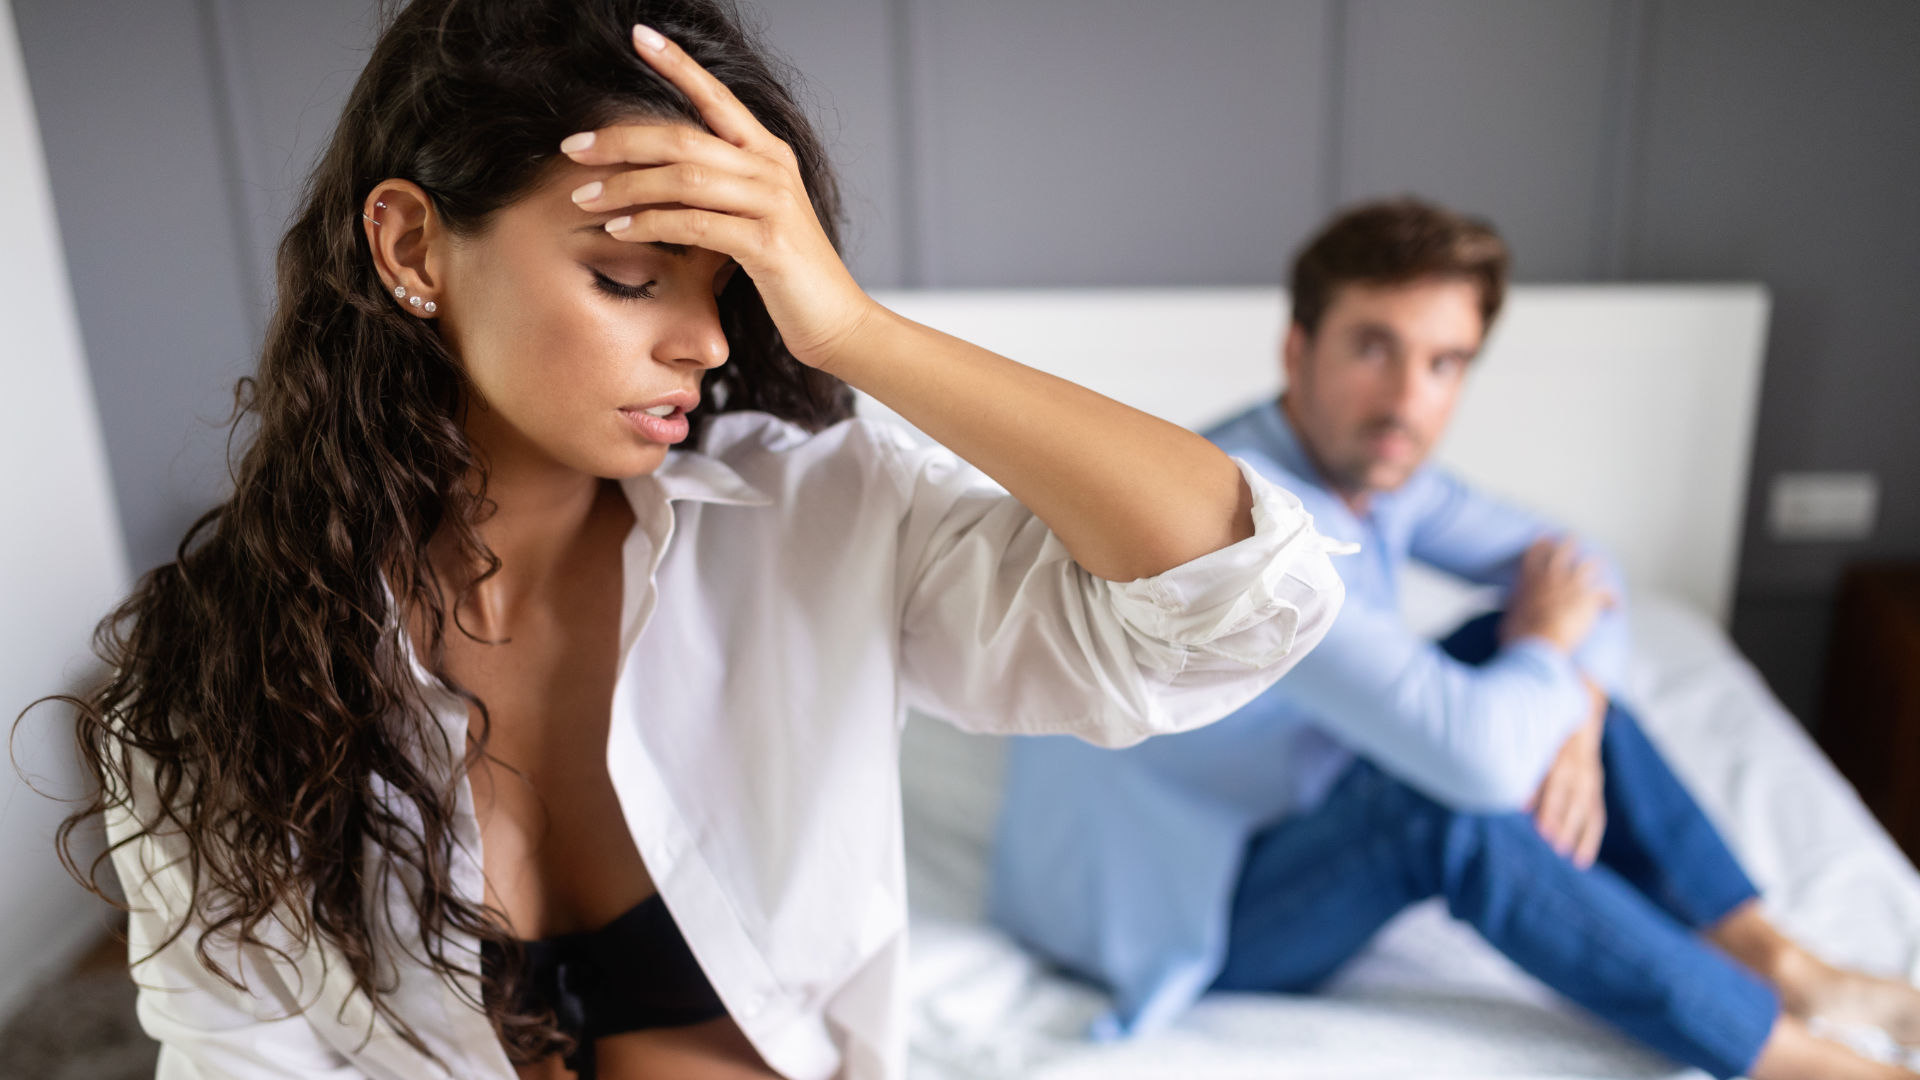 A woman breaks up with a guy because she is tired of all the arguing and fighting